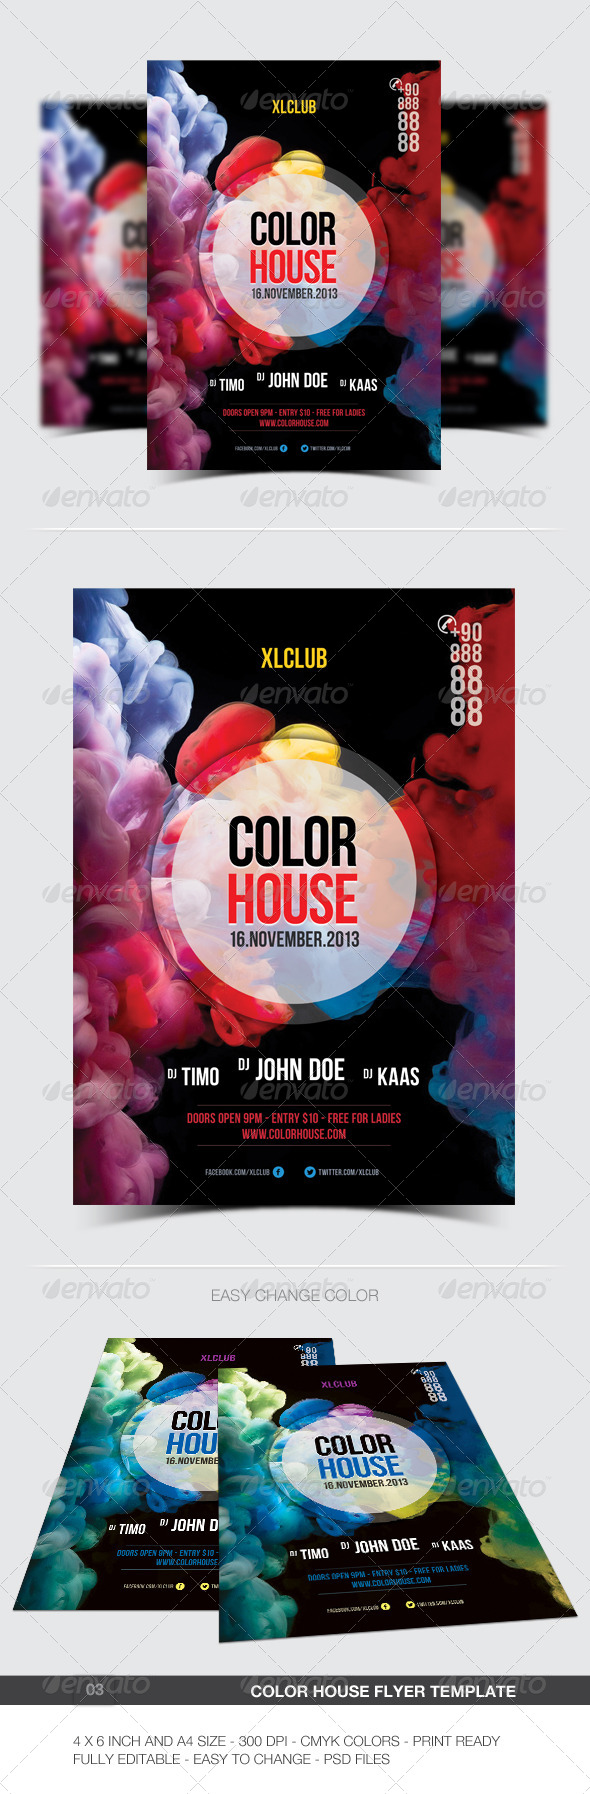 Color House Flyer/Poster - 03 - Clubs & Parties Events